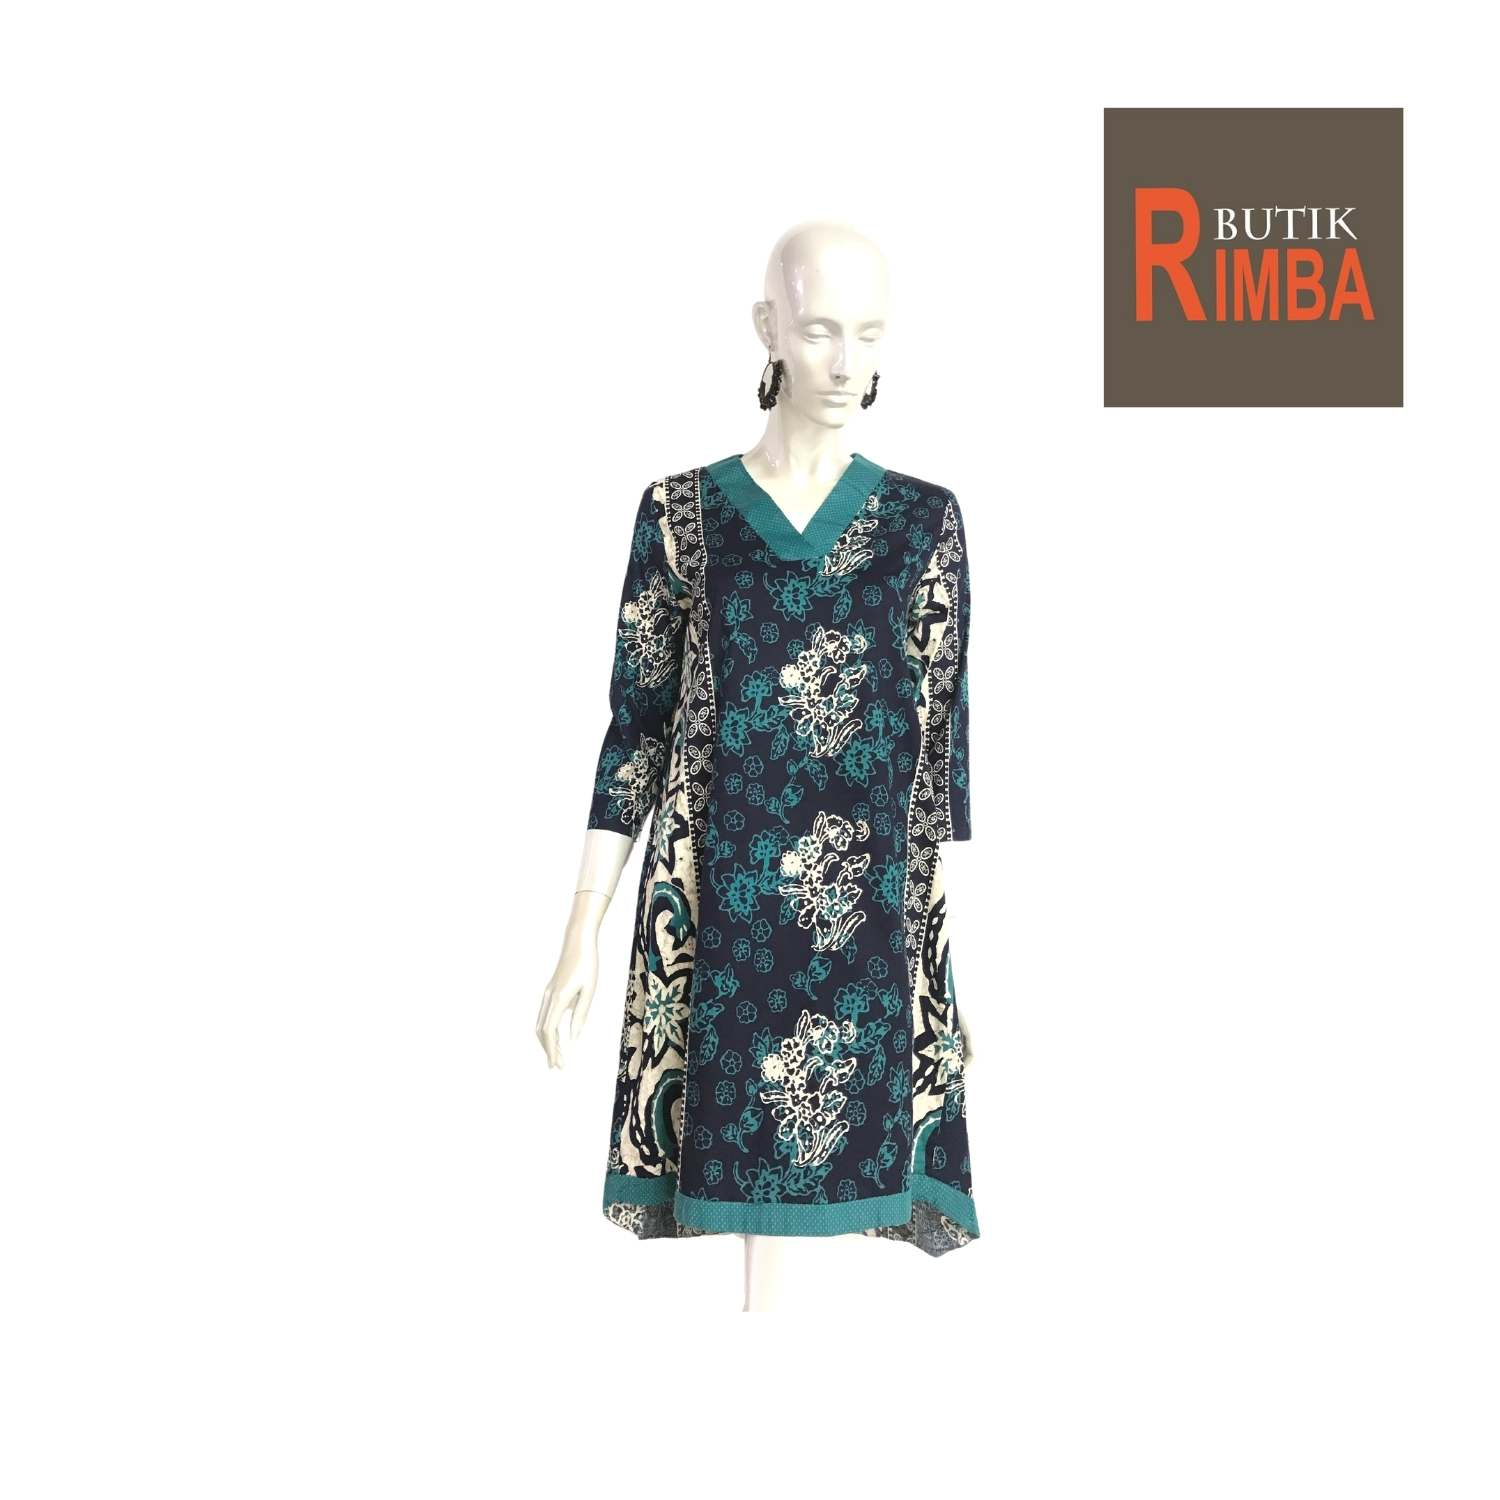 MODERN DRESS BATIK COTTON STRETCHABLE KNEE LENGTH FREE SIZE FOR FASHIONABLE WOMEN IN MIND 10